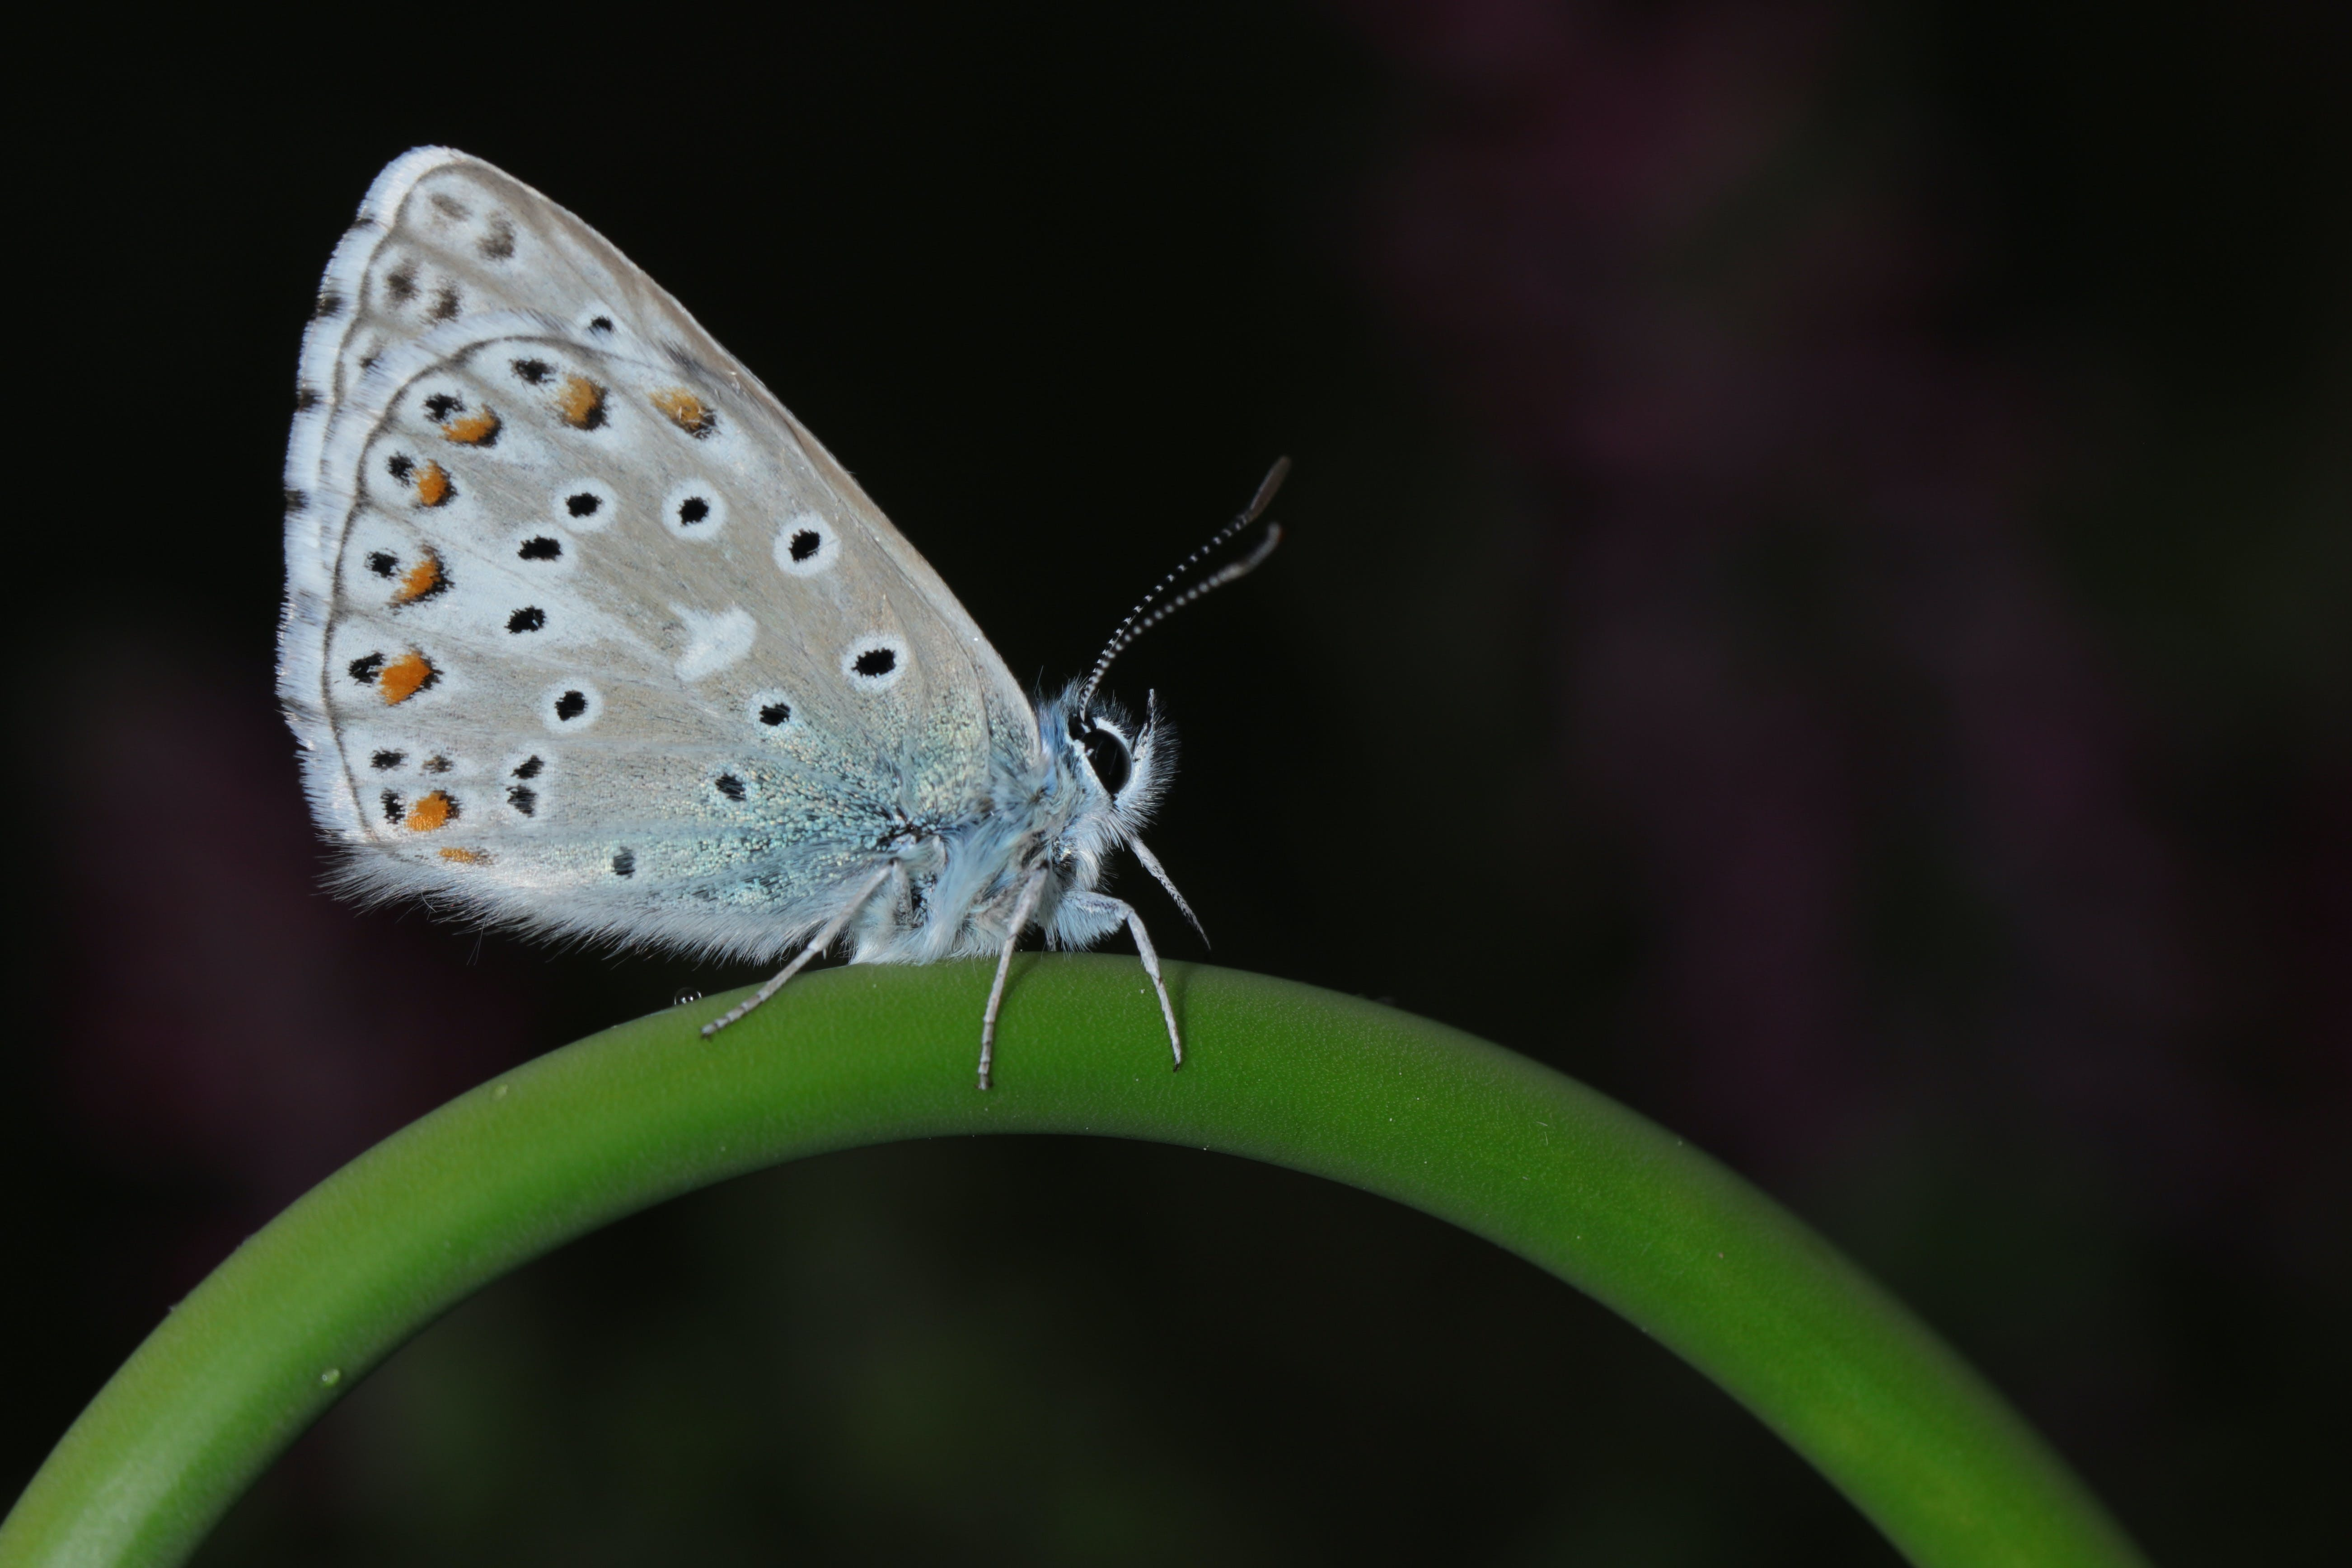 Common Blue Butterfly Perching on Green Stem in Close-up Photography